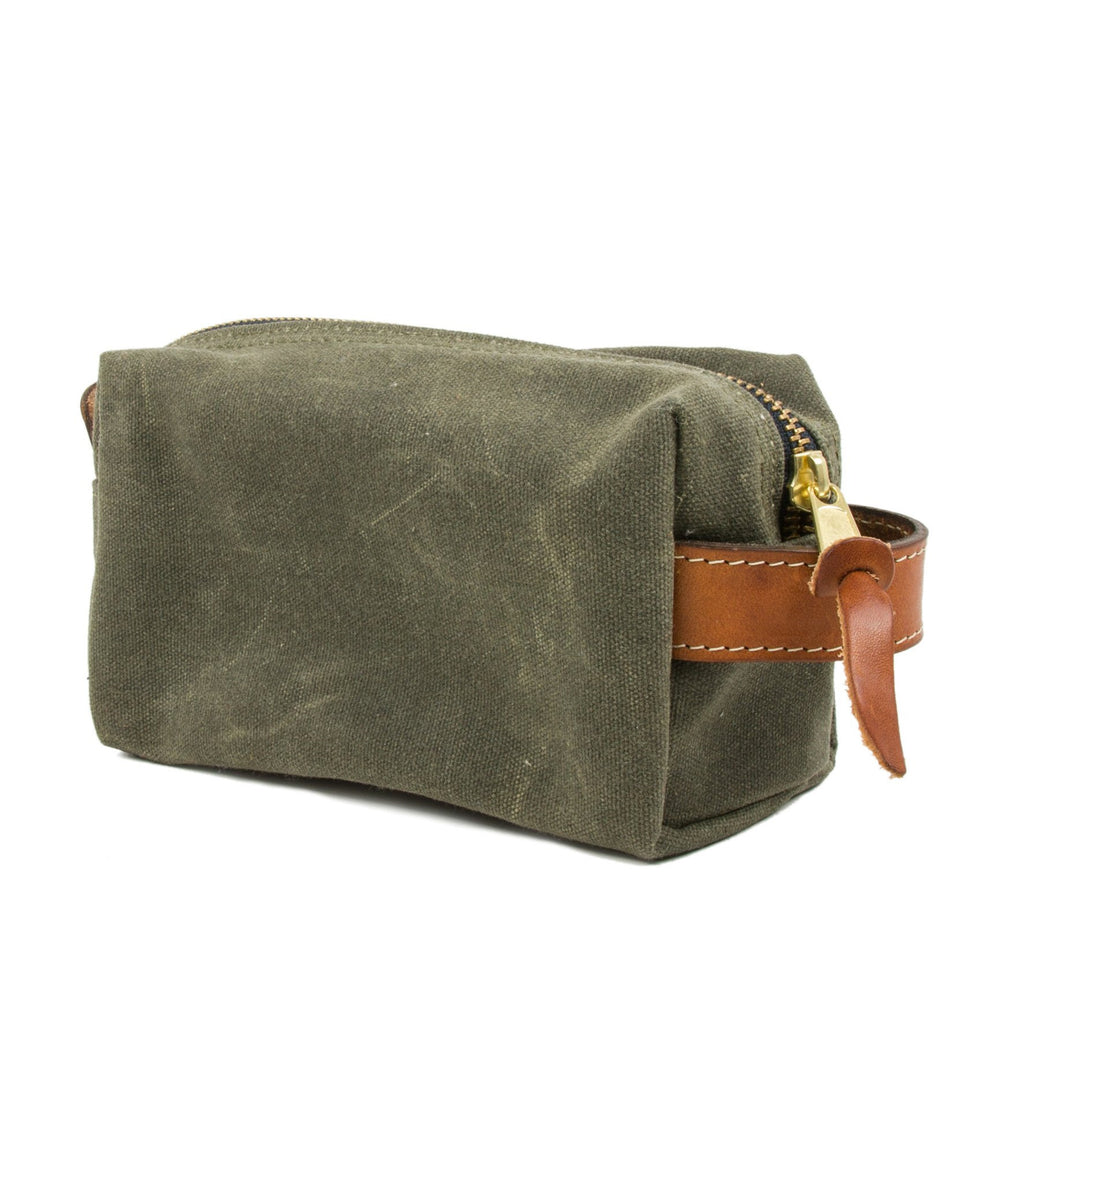 Owen & Fred Explore Waxed Canvas Shaving Kit Bag - Grooming: Dopp Kit - Iron and Resin